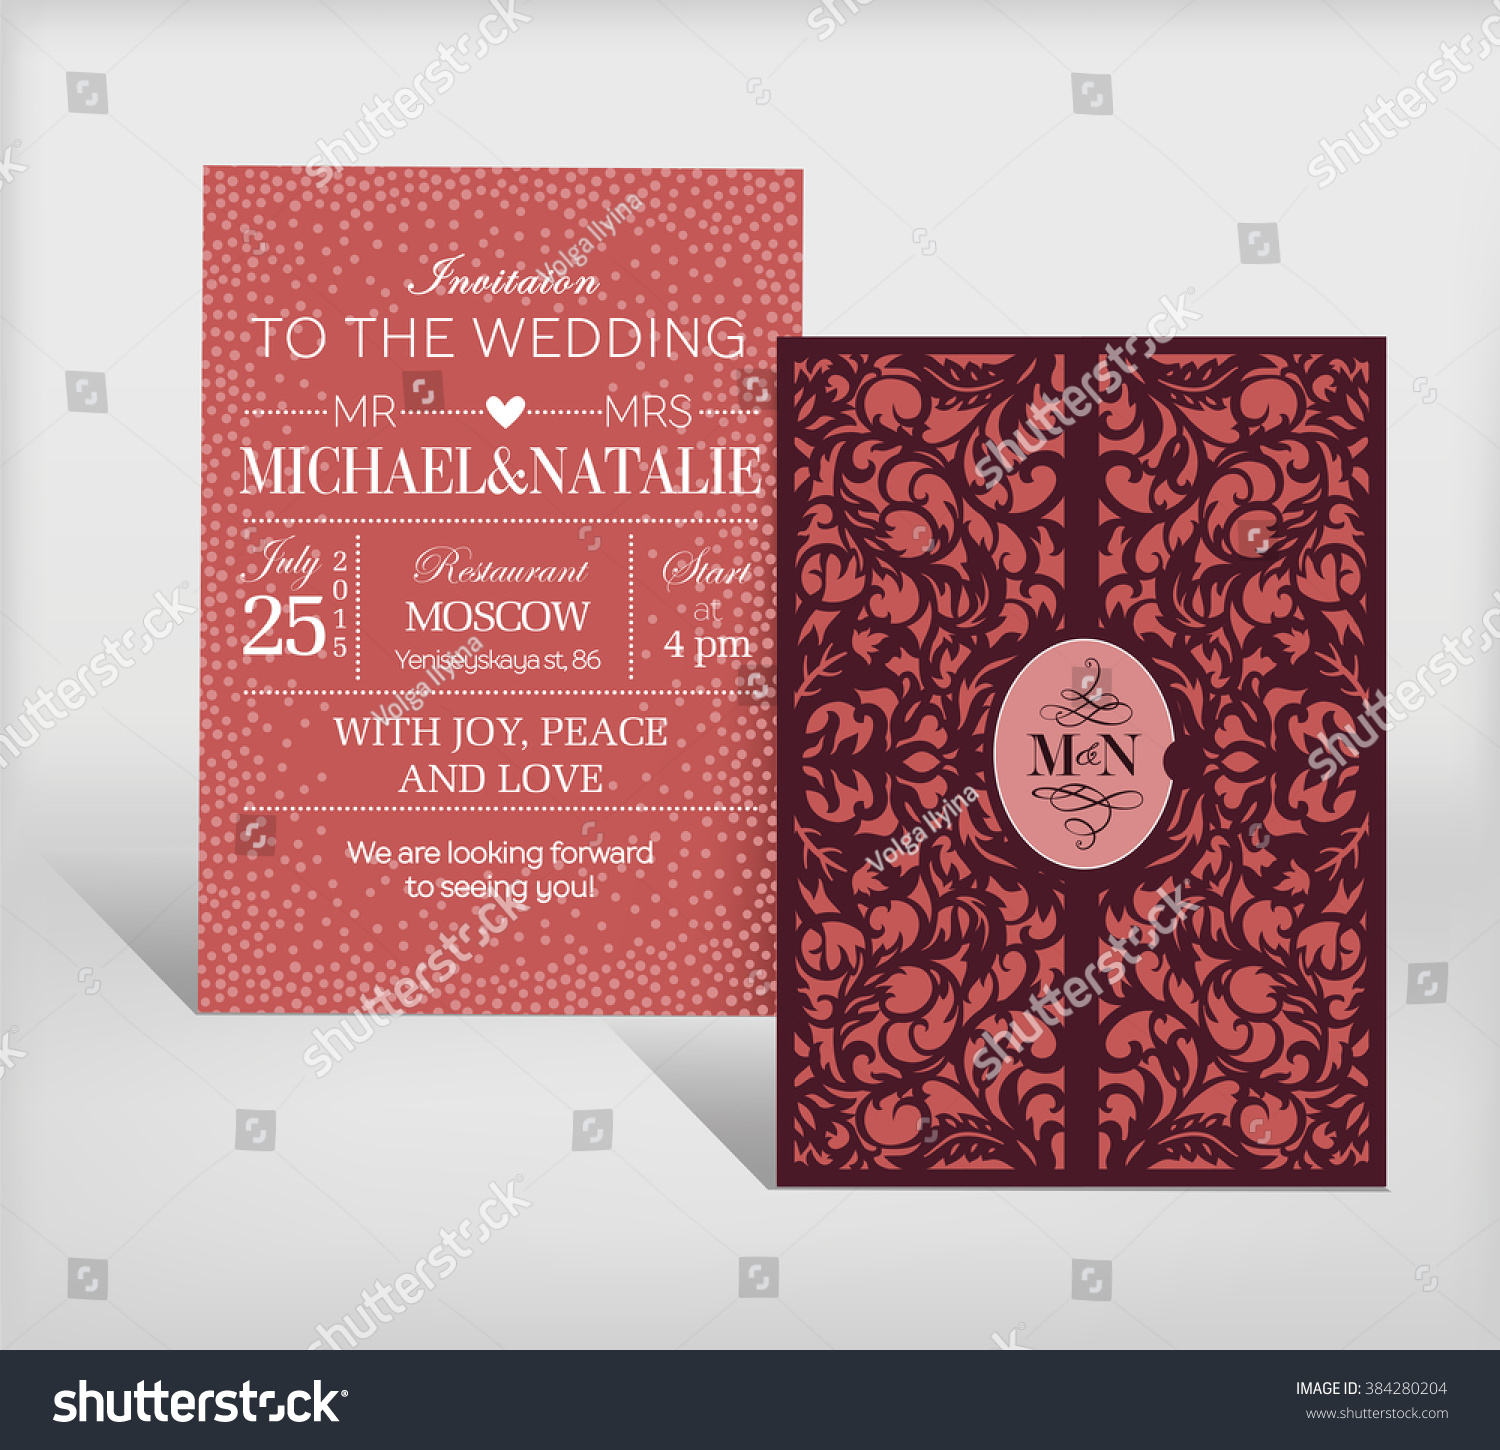 Curved Wedding Invitation Card Stock Vector (Royalty Free) 384280204 ...